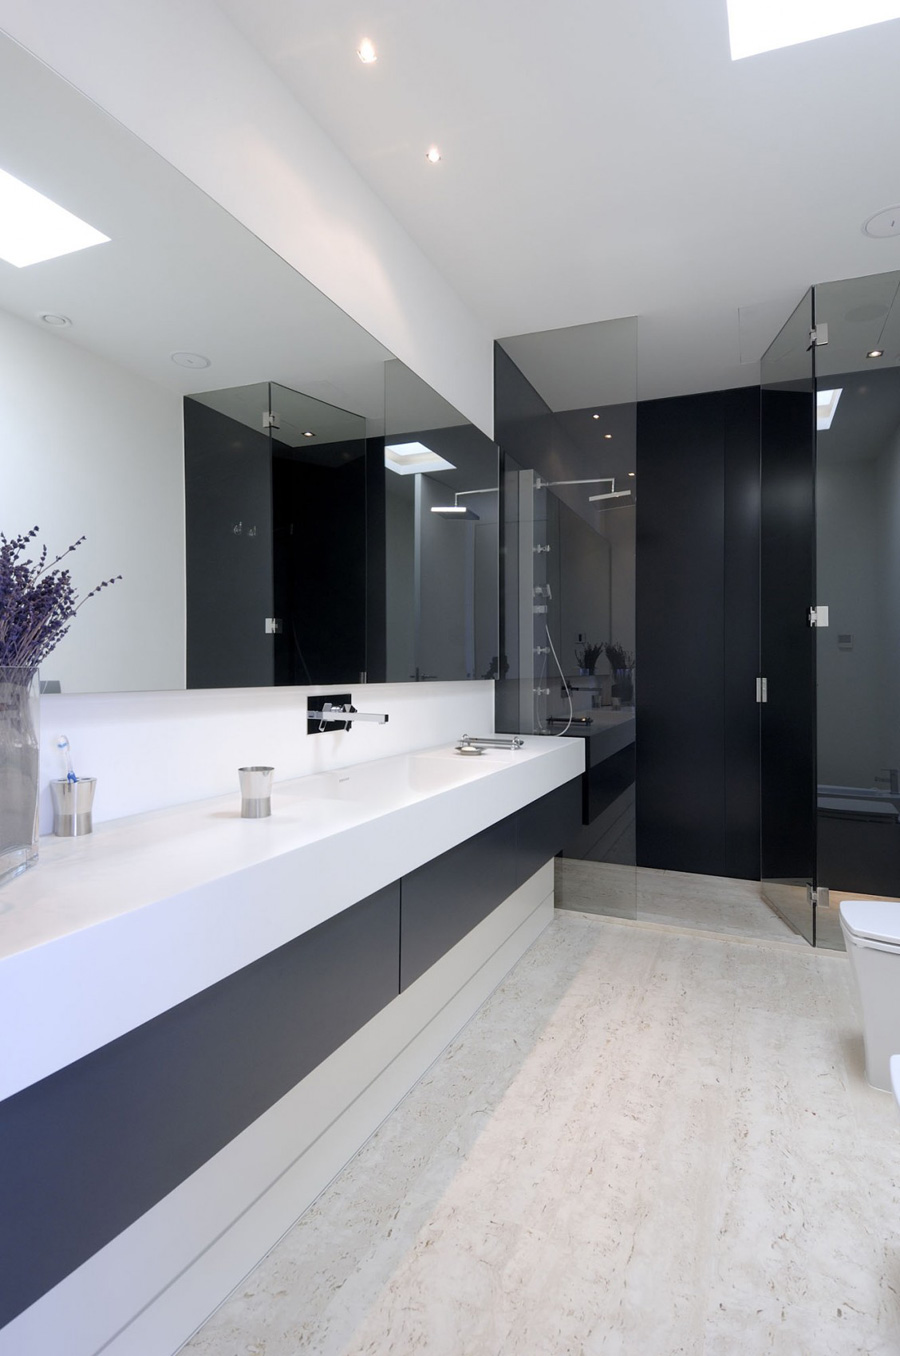 Bathroom, The Vivienda 19 by A-cero